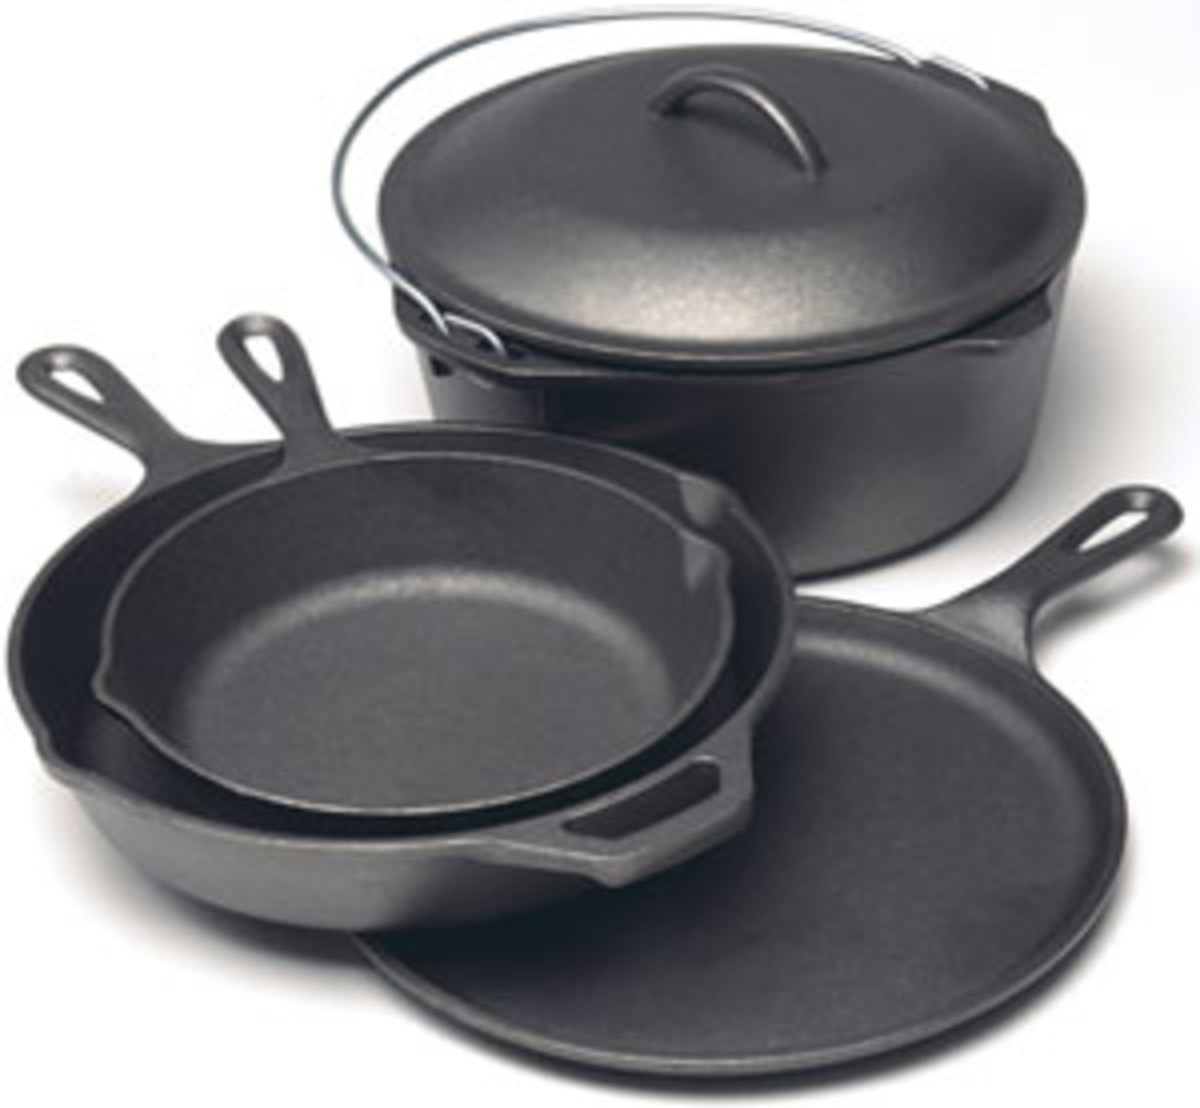 Outdoor Camping Cast Iron Cookware Sets